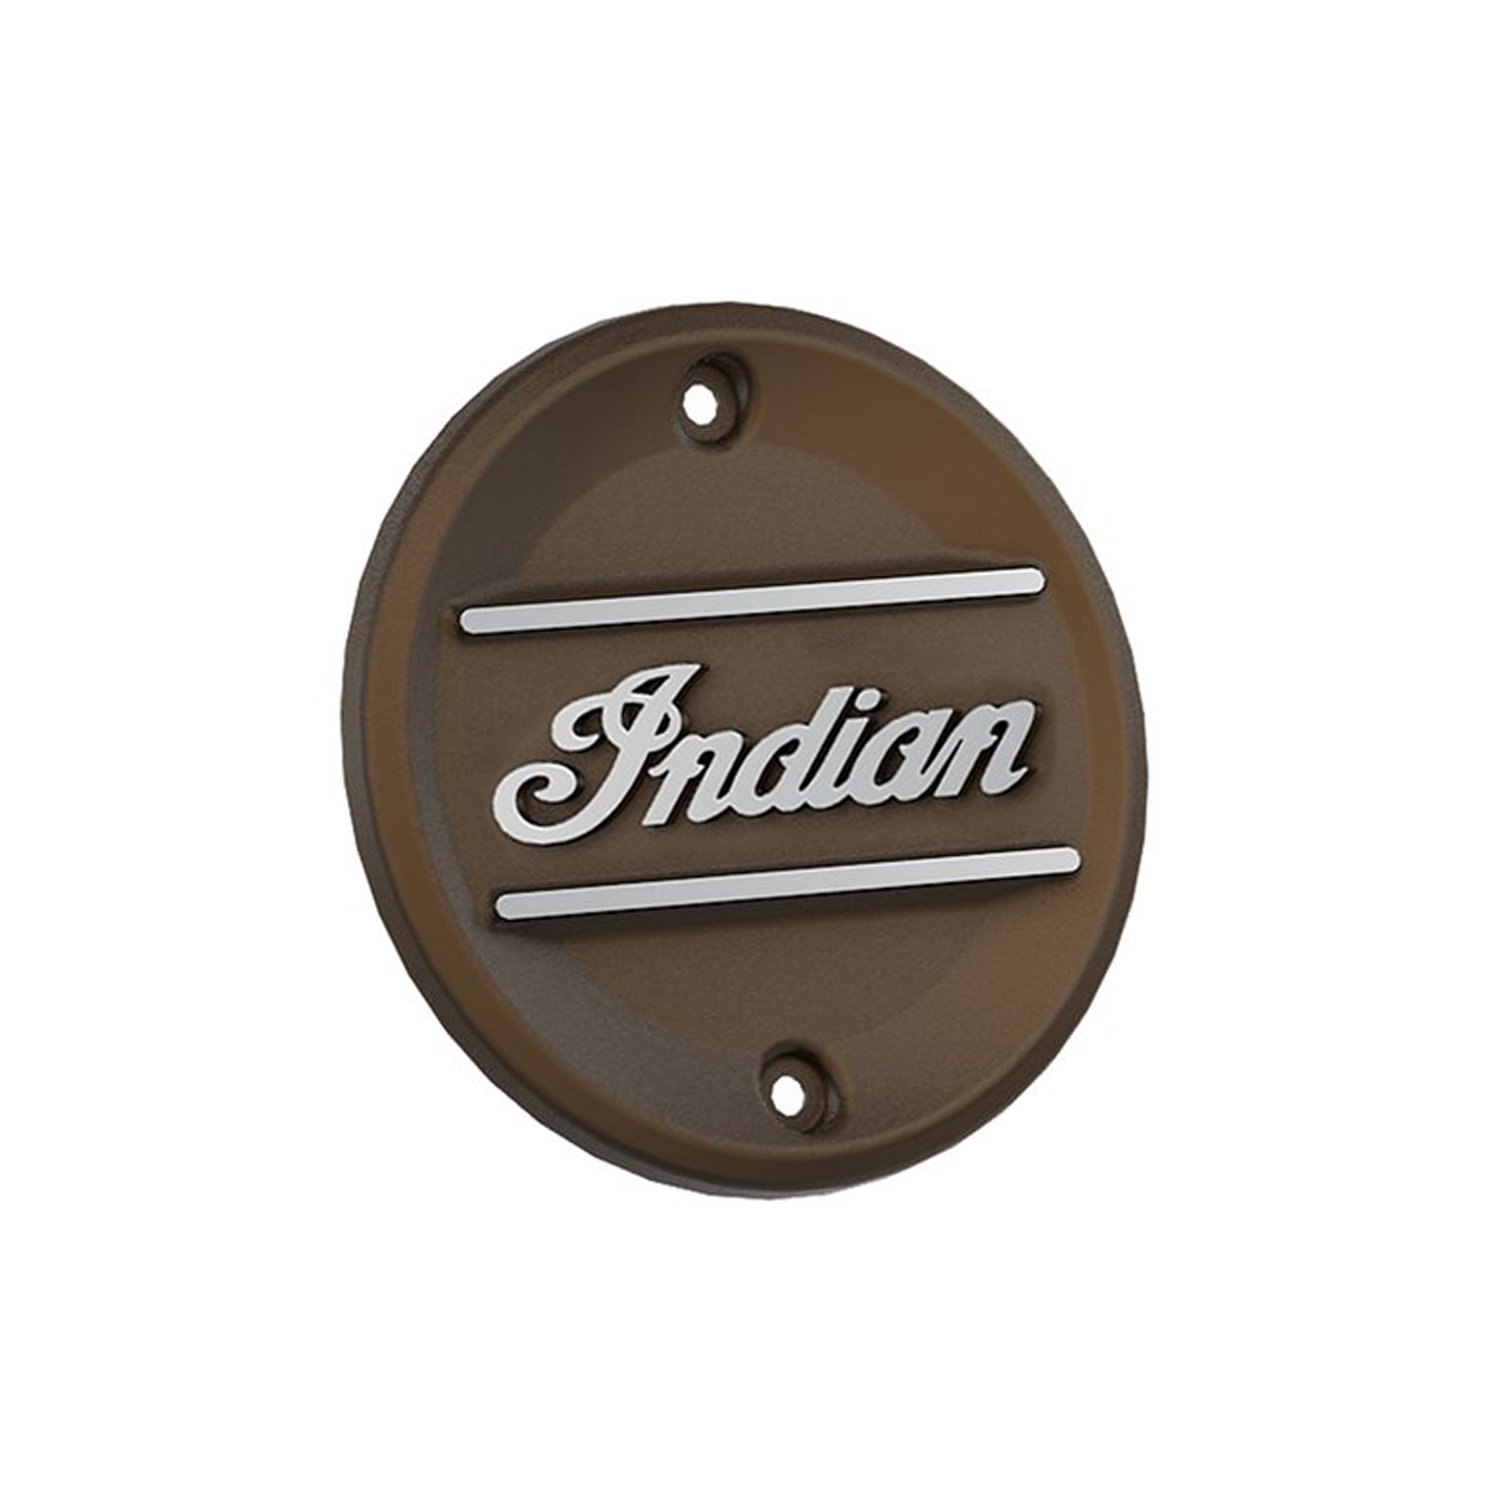 Primary Engine Cover – Bronze